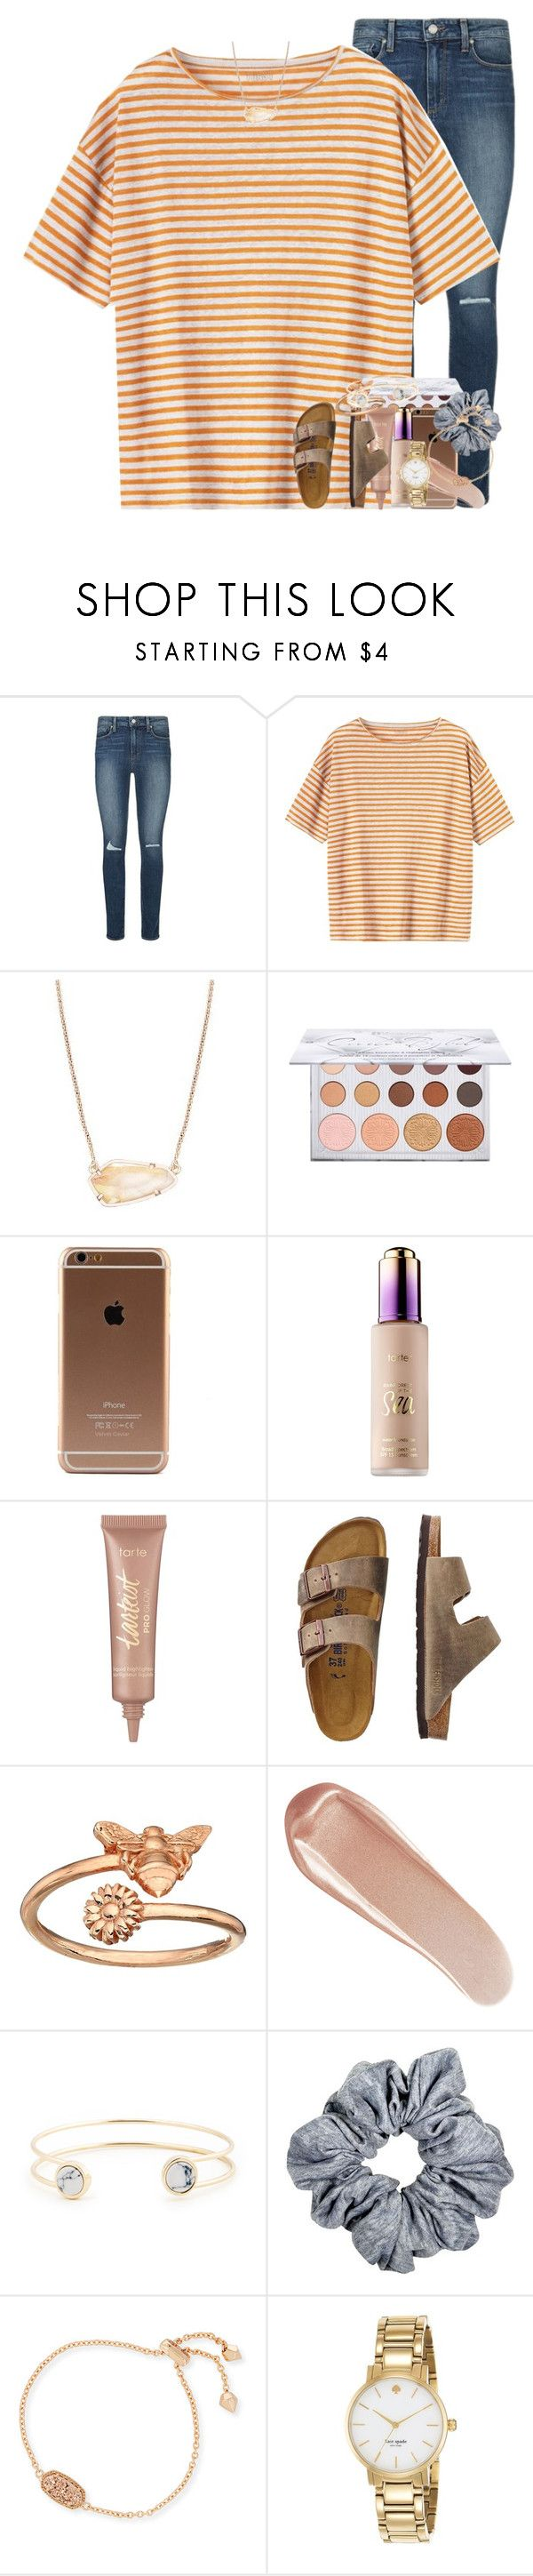 """""""i focused so hard on what i wanted, i lost sight of what i deserved."""" by ellaswiftie13 on Polyvore featuring Paige Denim, Toast, Kendra Scott, tarte, TravelSmith, Alex and Ani, NARS Cosmetics, Sole Society and Kate Spade"""